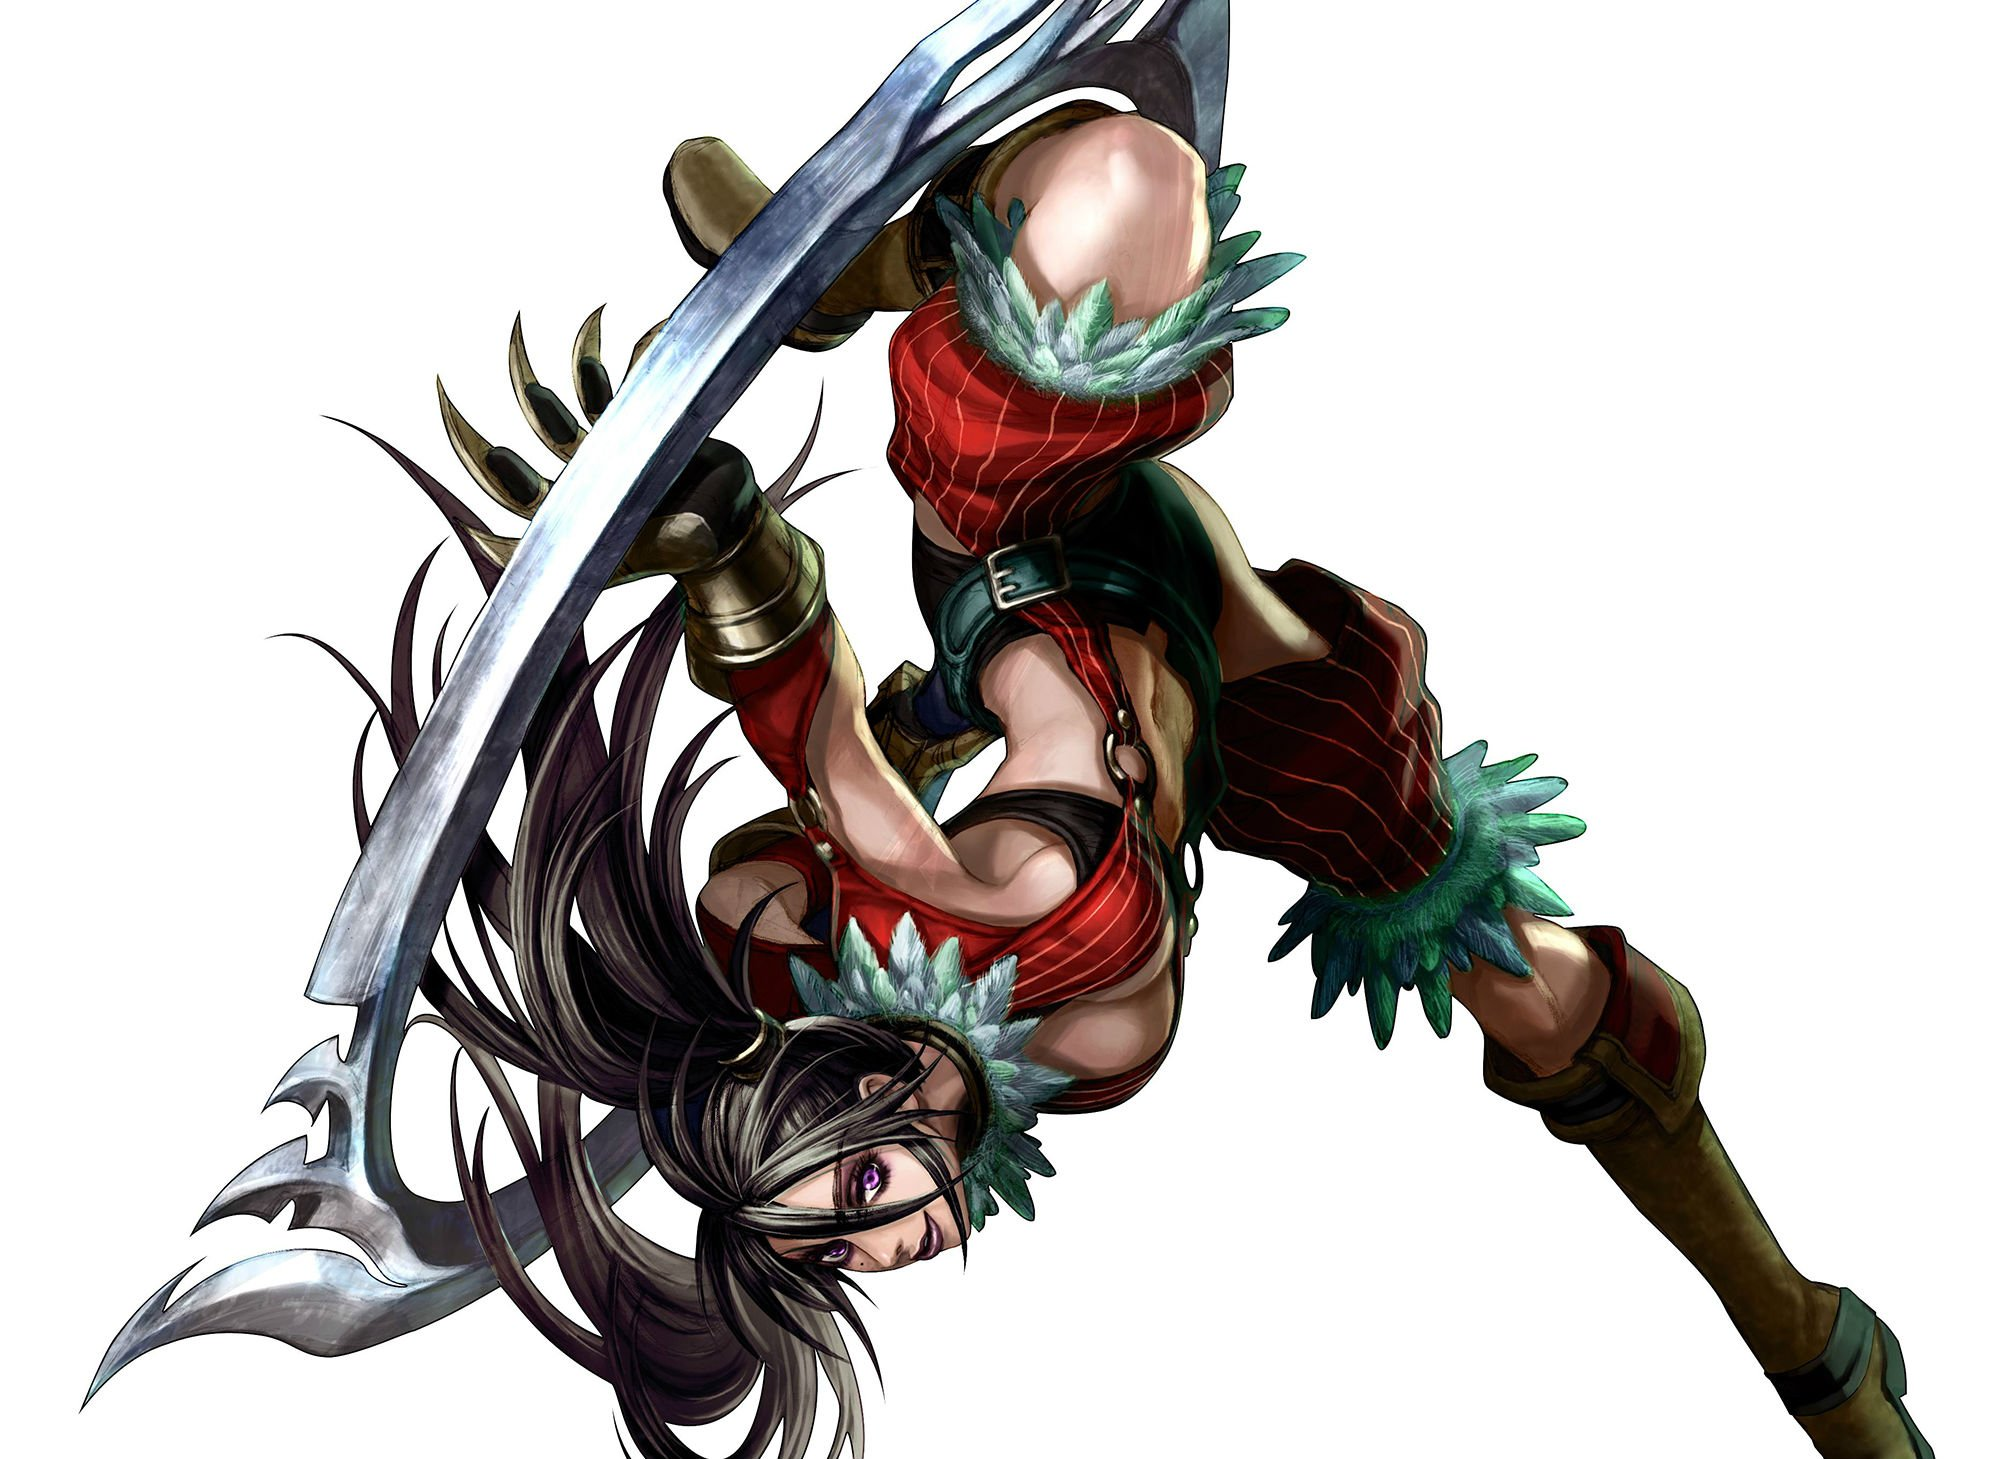 videogames anime warrior - photo #36